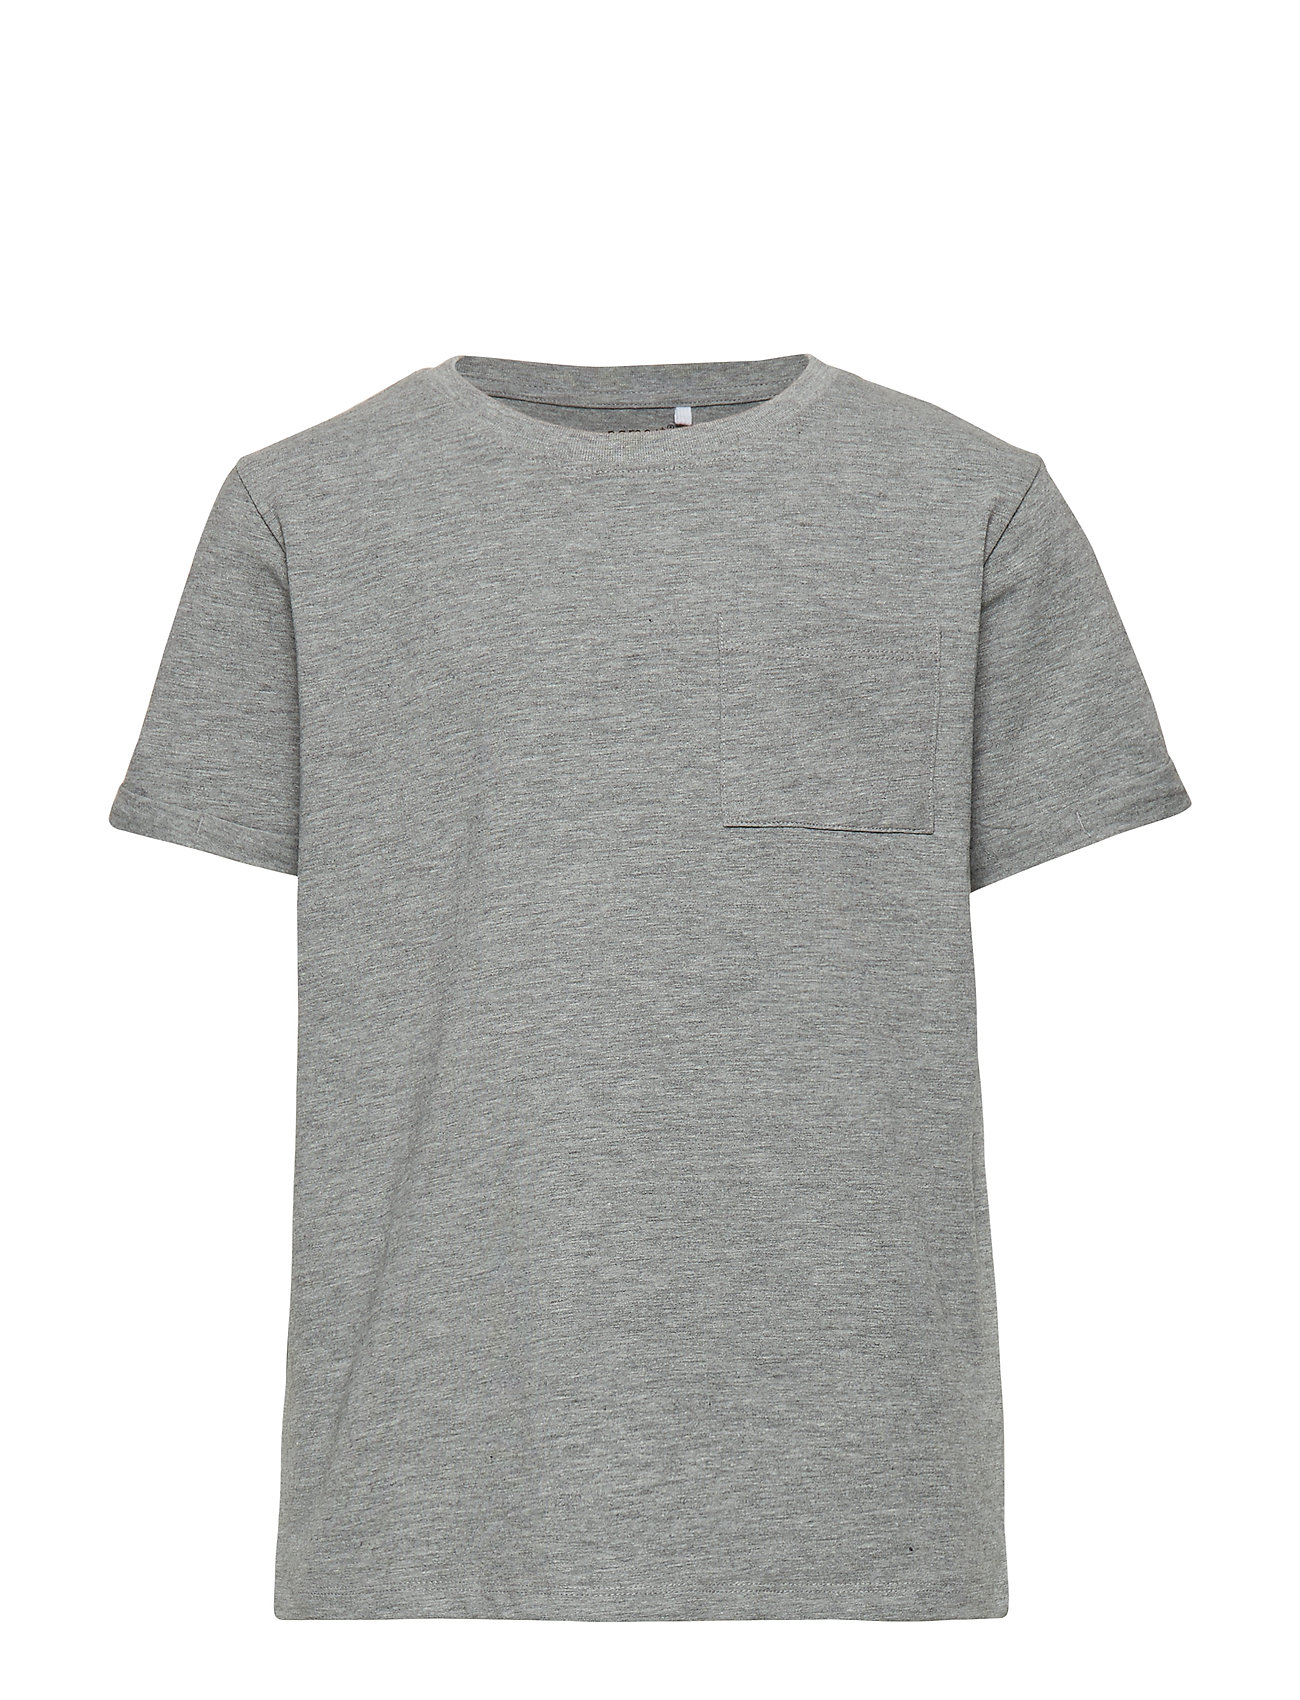 Image of Nkmvester Ss Top Noos T-shirt Grå NAME IT (2923023757)